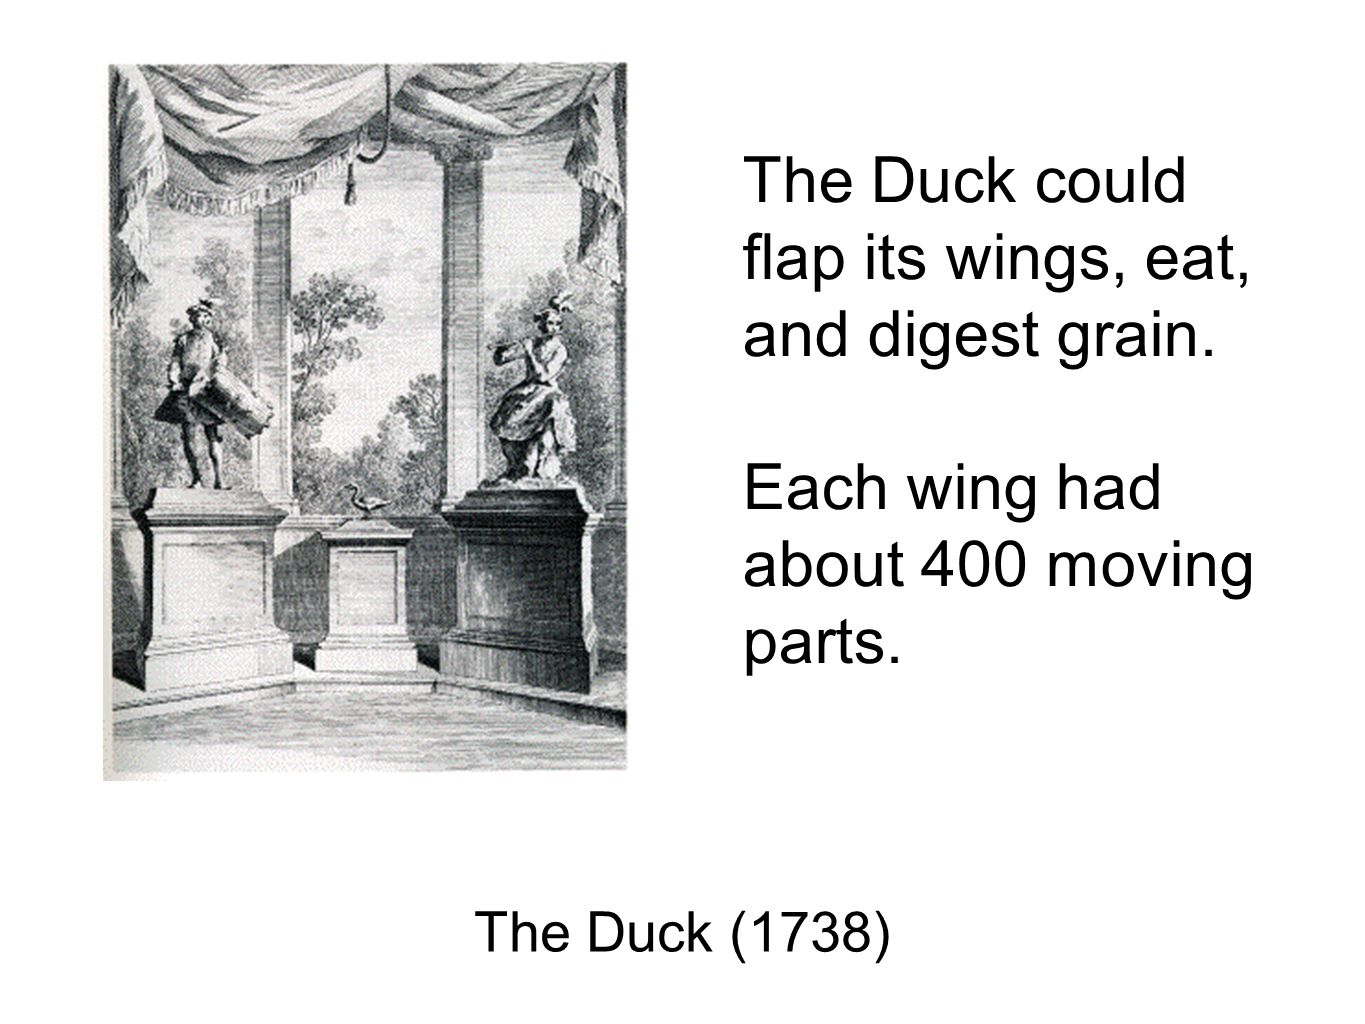 The Duck could flap its wings, eat, and digest grain.